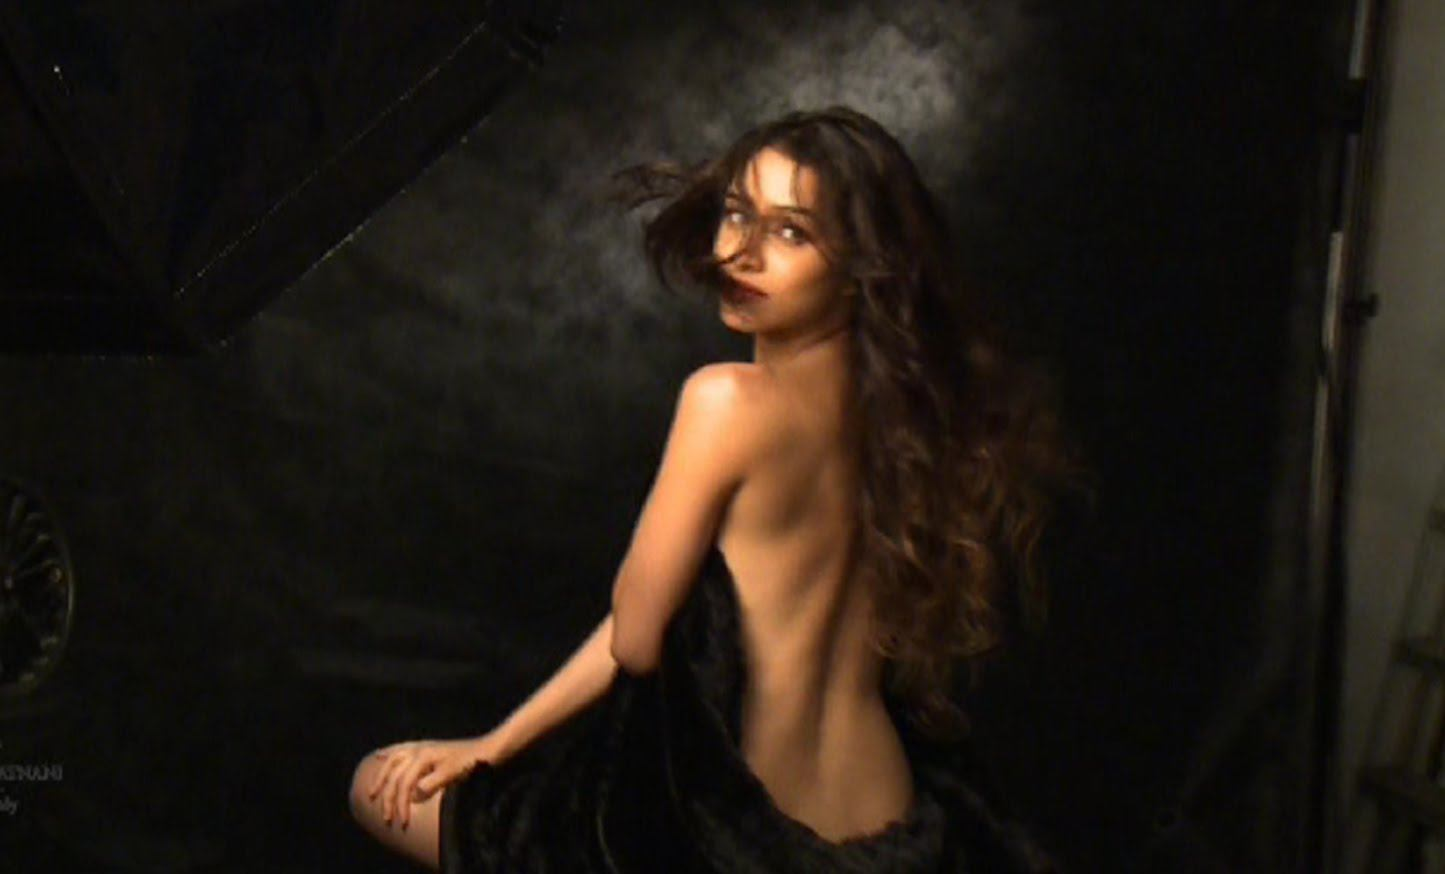 shraddh-kapoor-nude-images